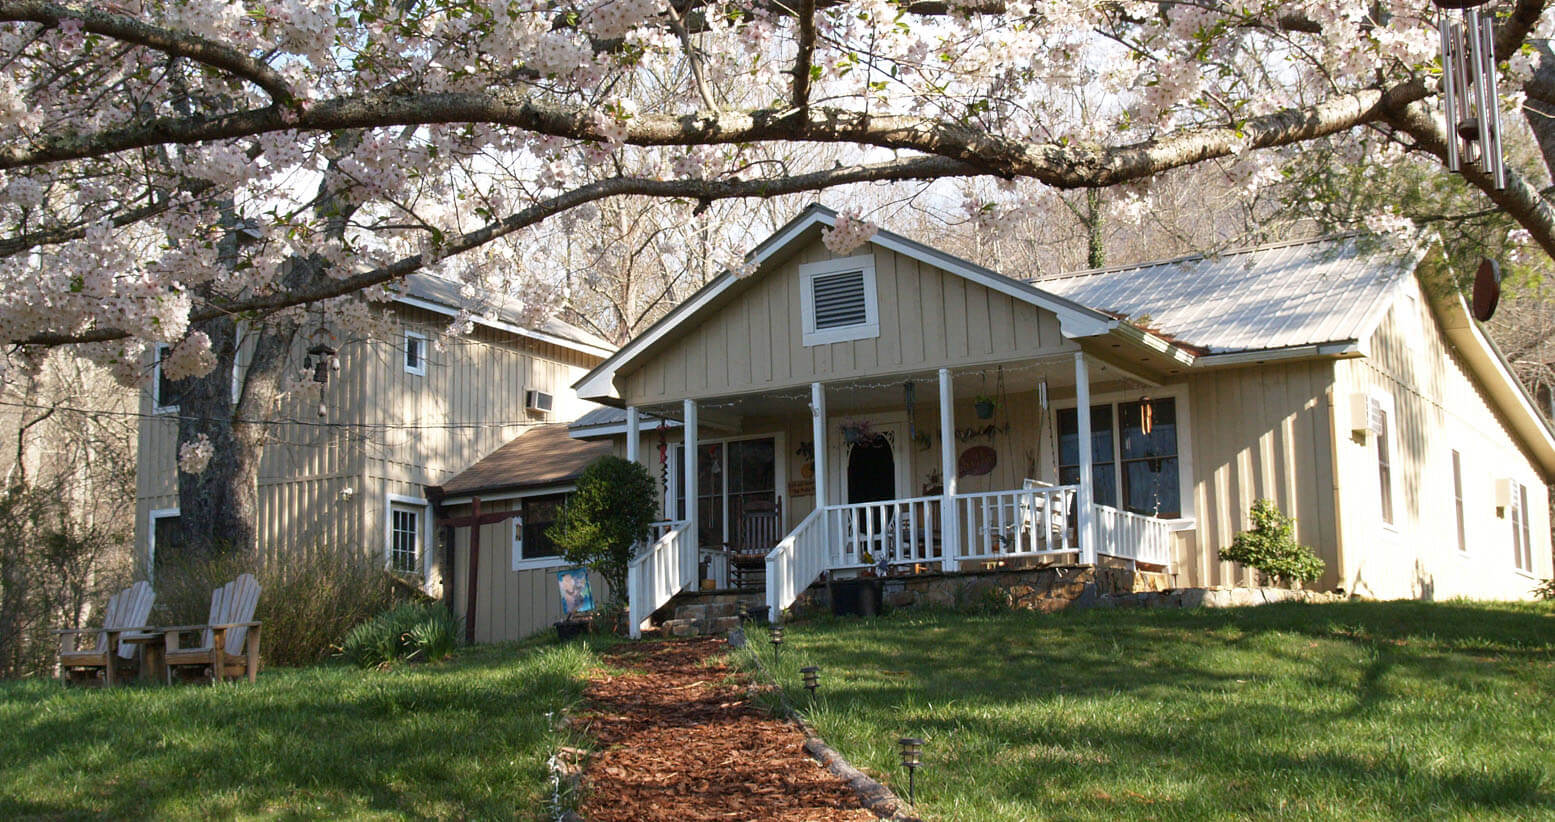 Brasstown Nc Bed And Breakfast